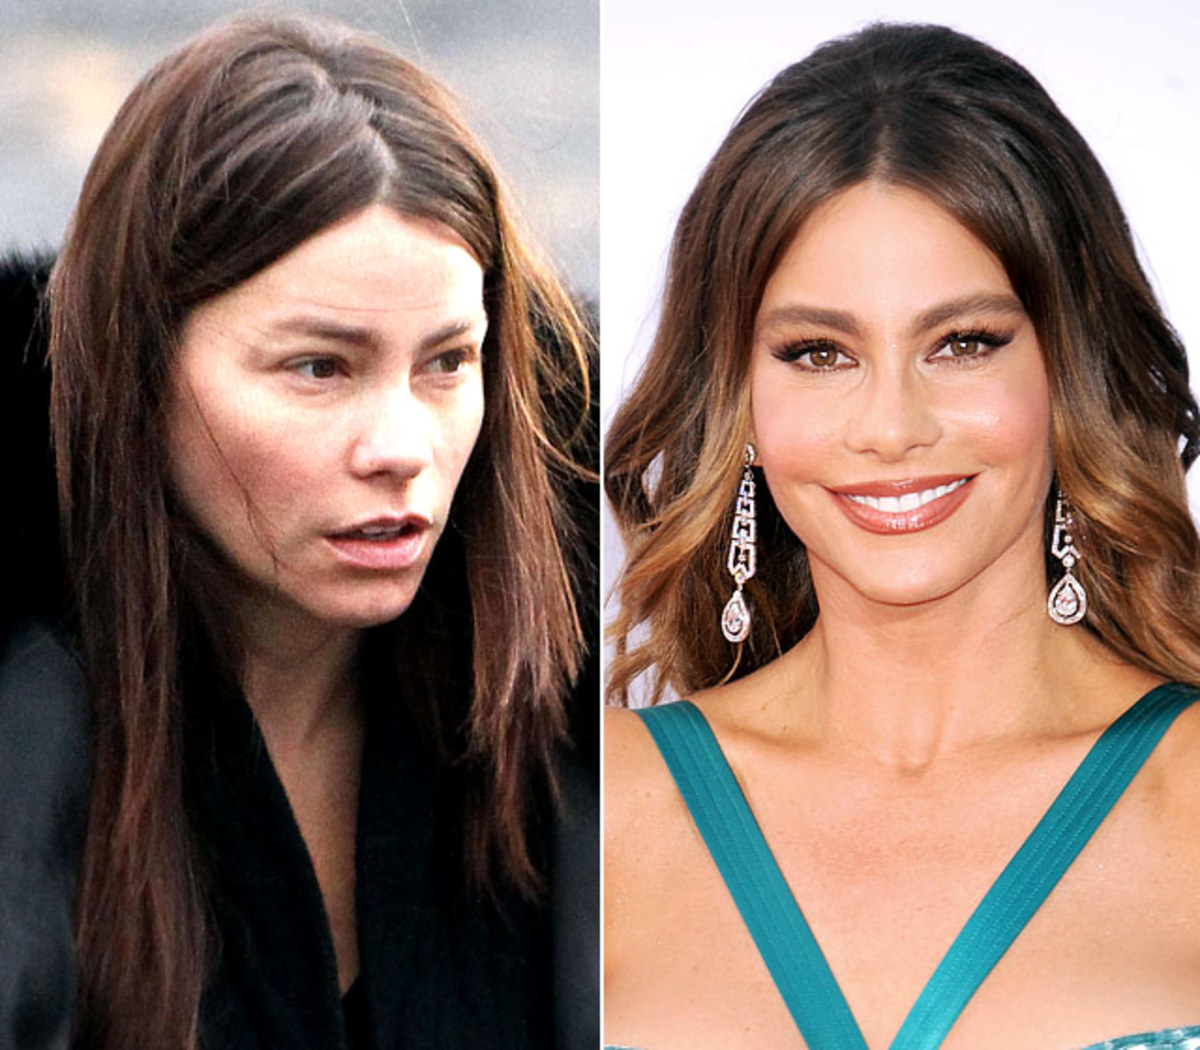 Sofia Vergara is almost unrecognizable without her pounds of make-up and bright red lips.